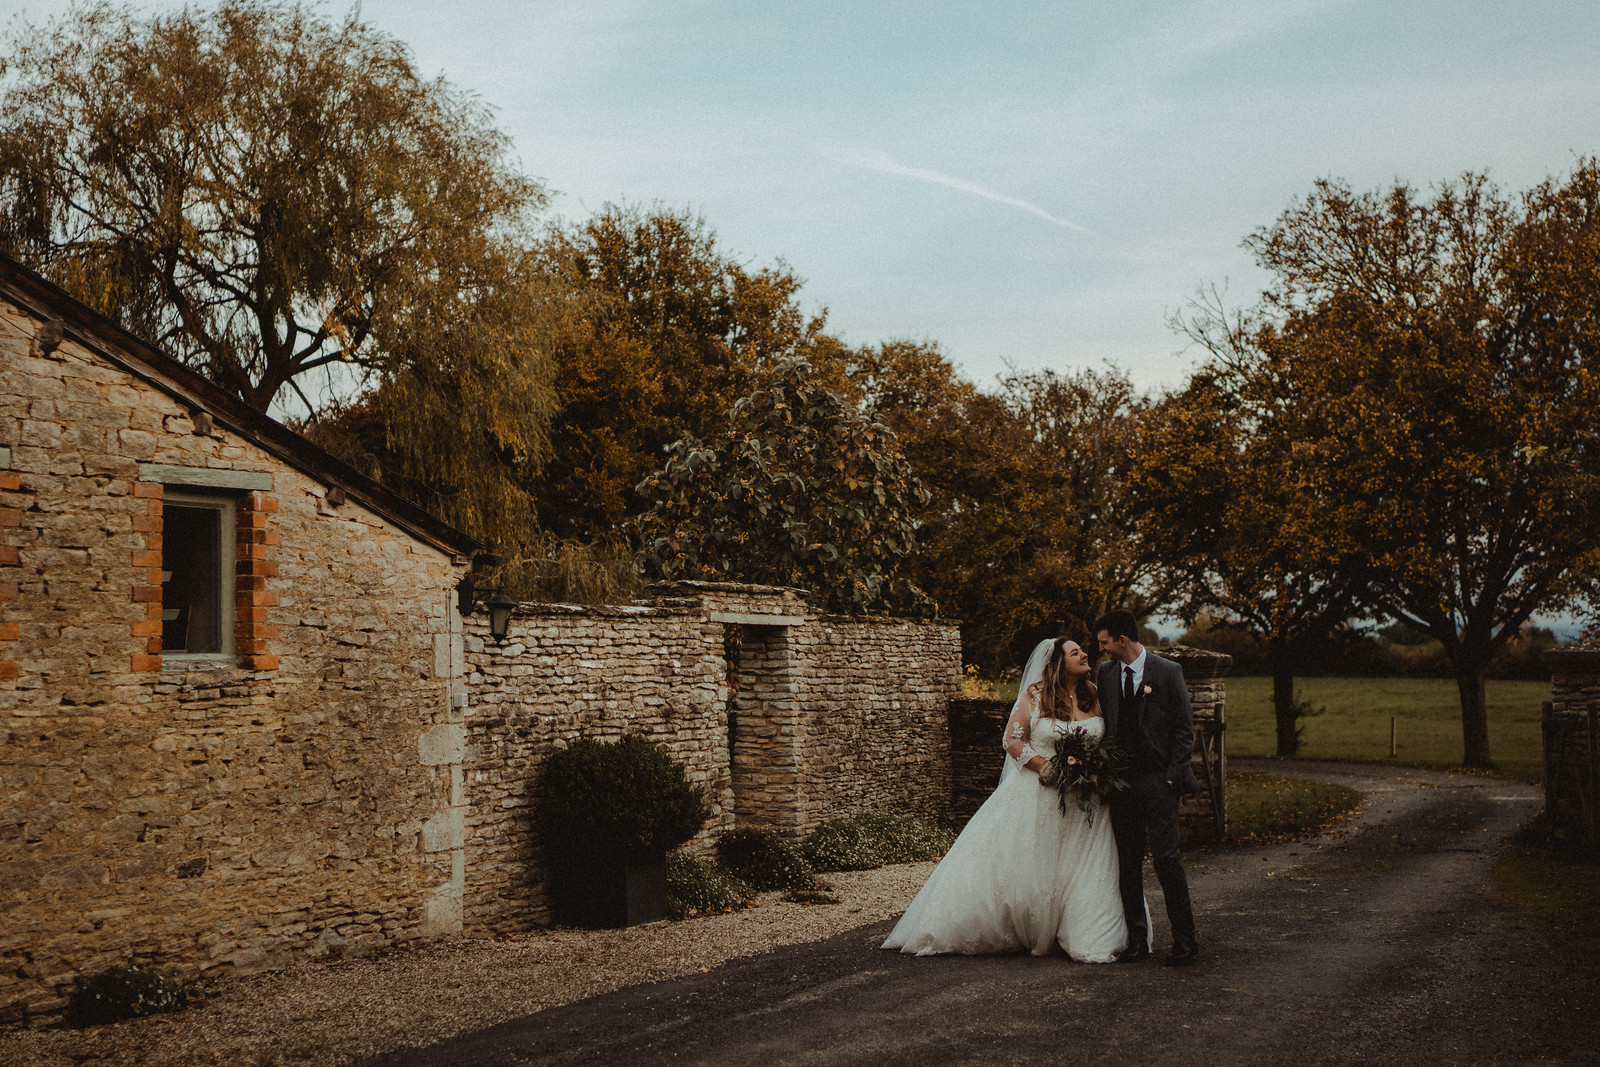 Bride and groom smile as they walk through the outdoors of their venue| Cotswold Wedding Venue